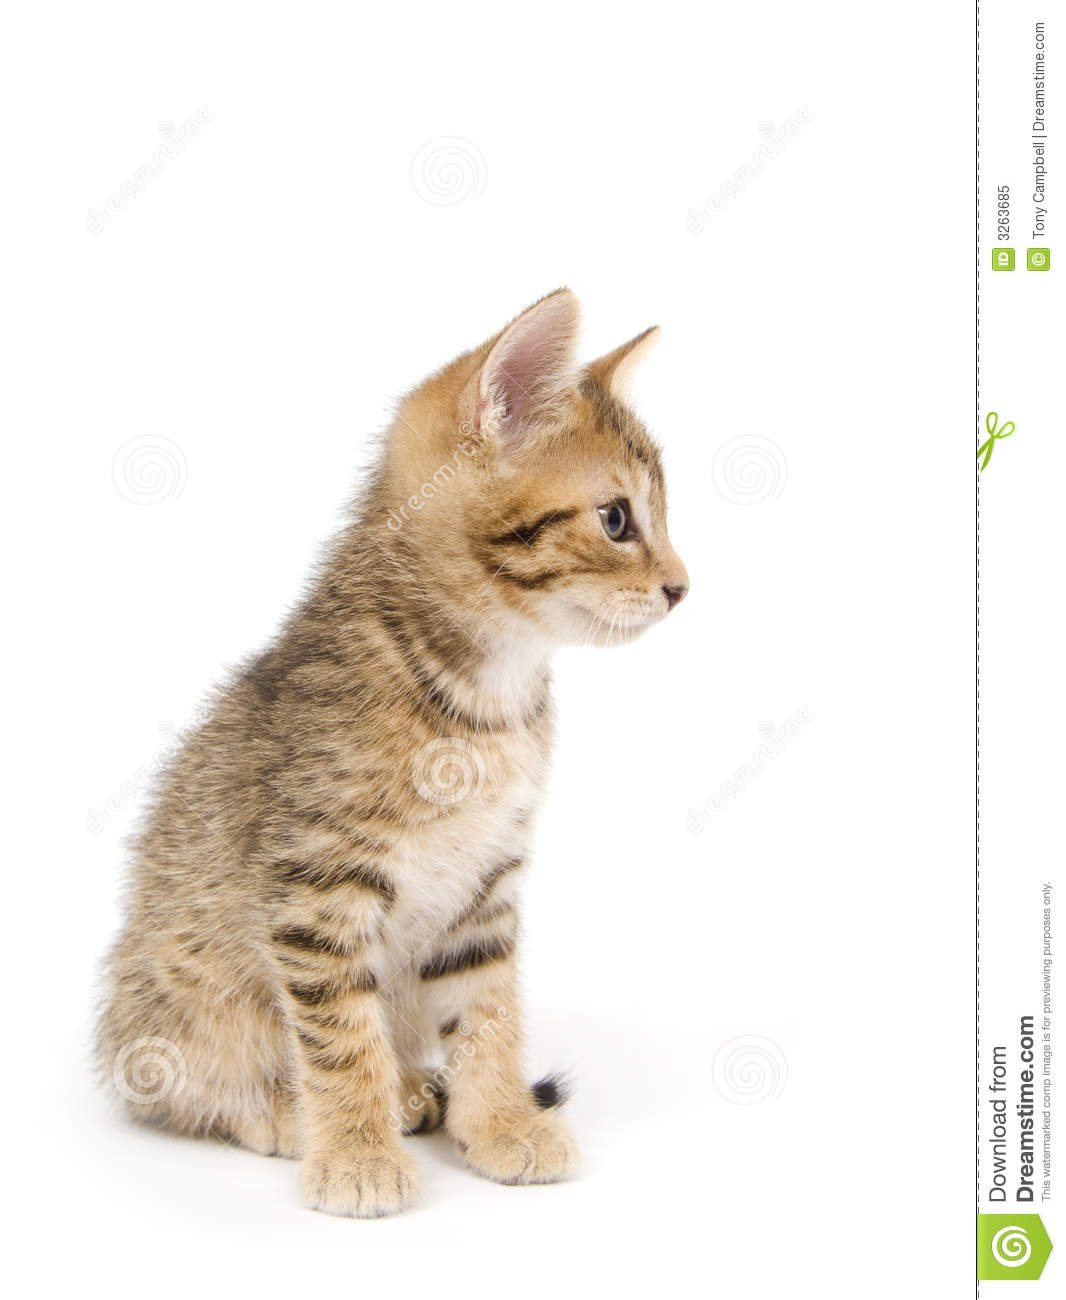 Kitten Looking Right Royalty Free Stock Photo Image 3263685